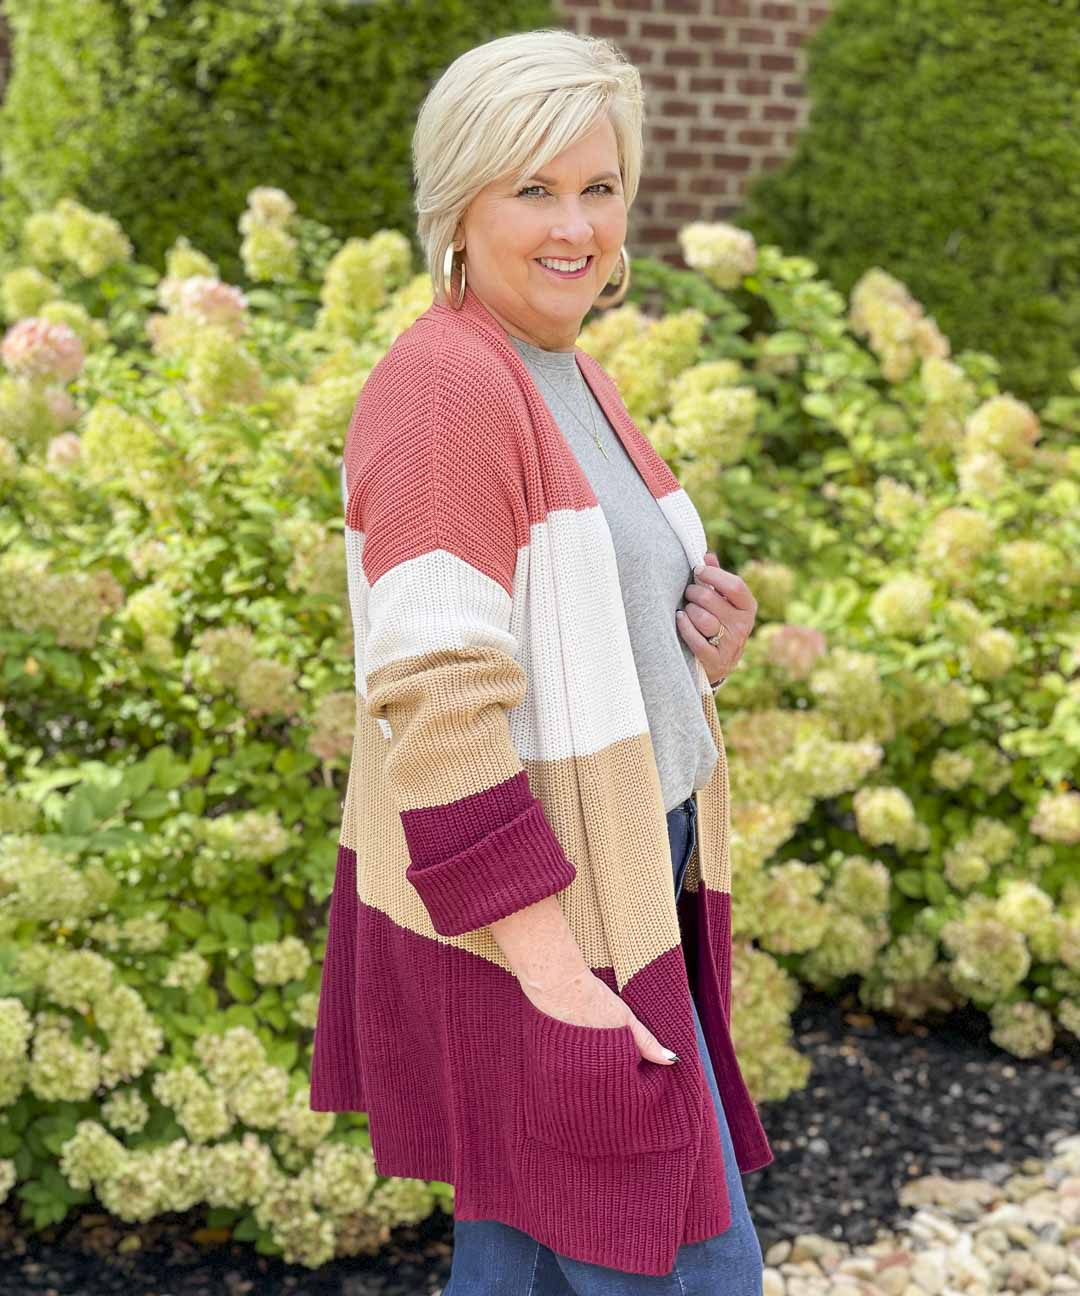 Over 40 Fashion Blogger, Tania Stephens, is showing her recent Walmart haul including this color blocked cardigan